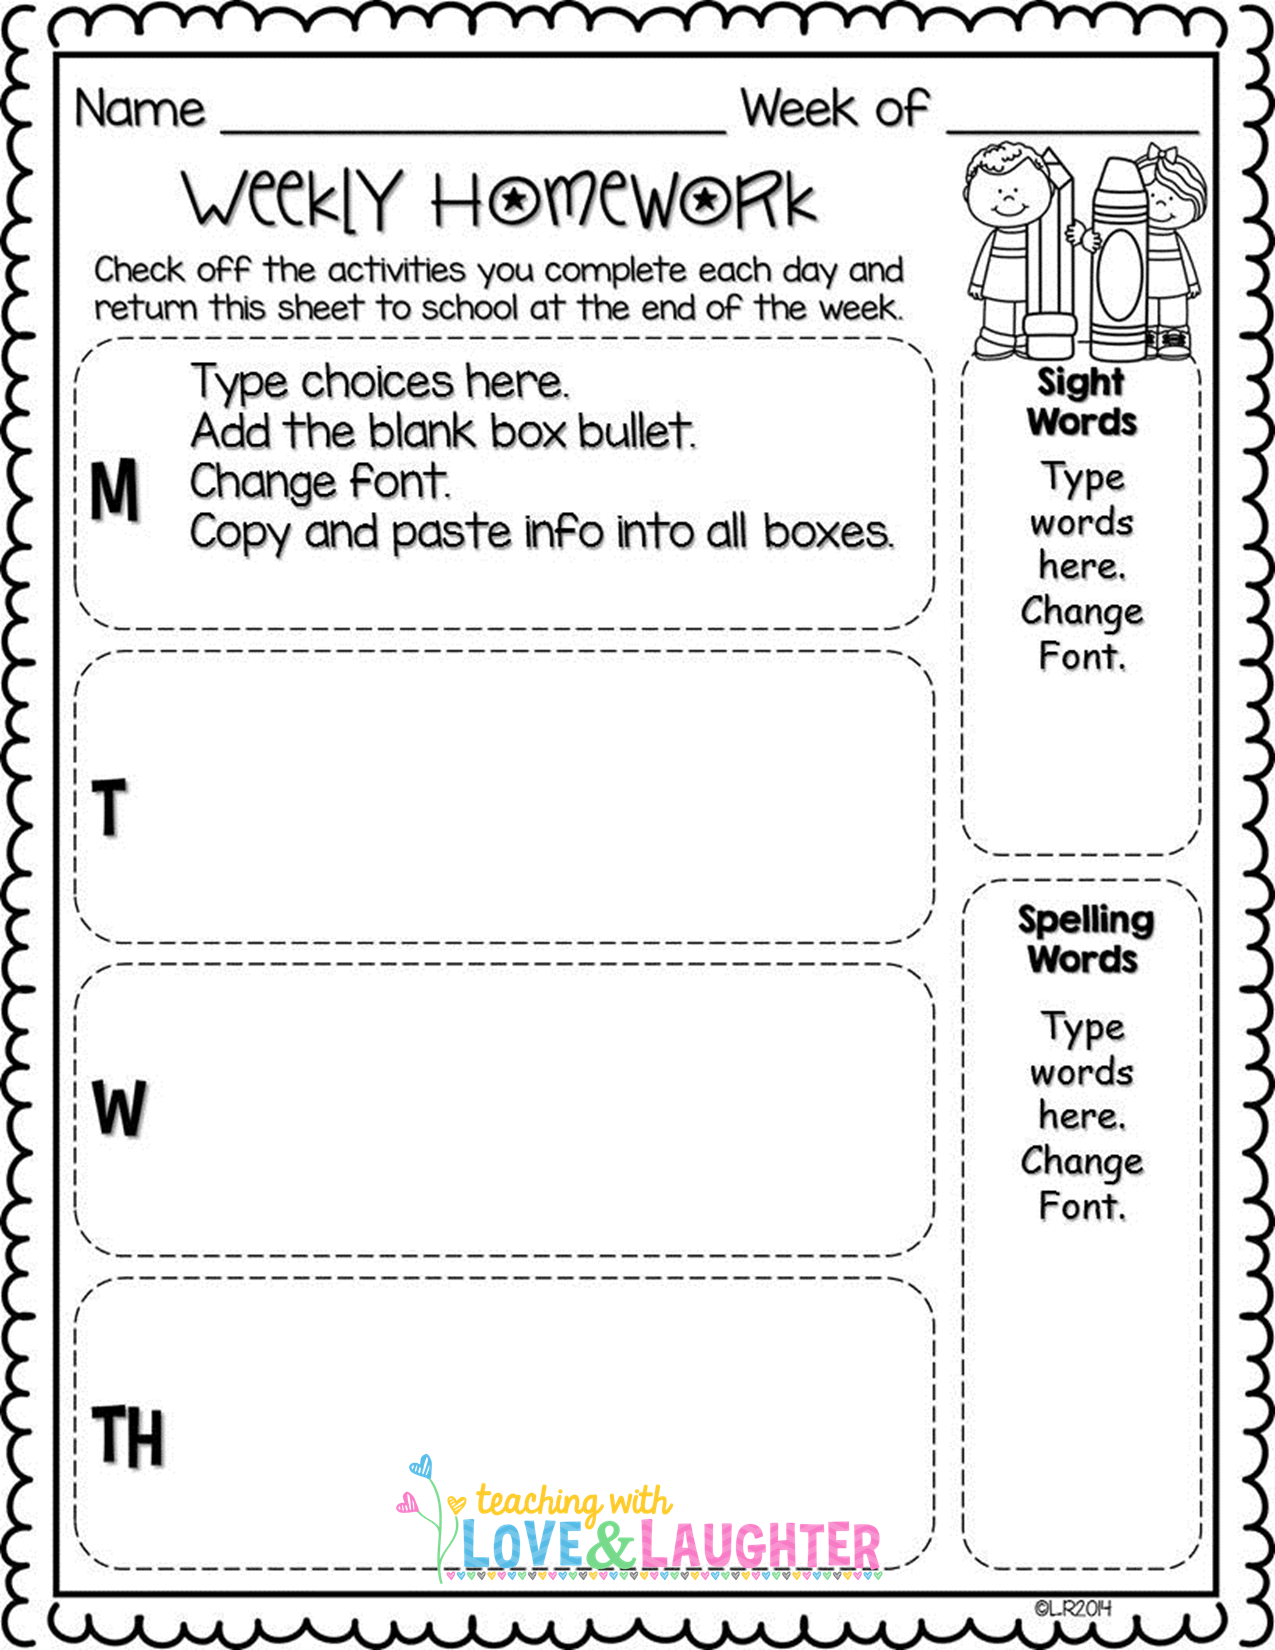 Editable Weekly Homework Checklists Like The Layout